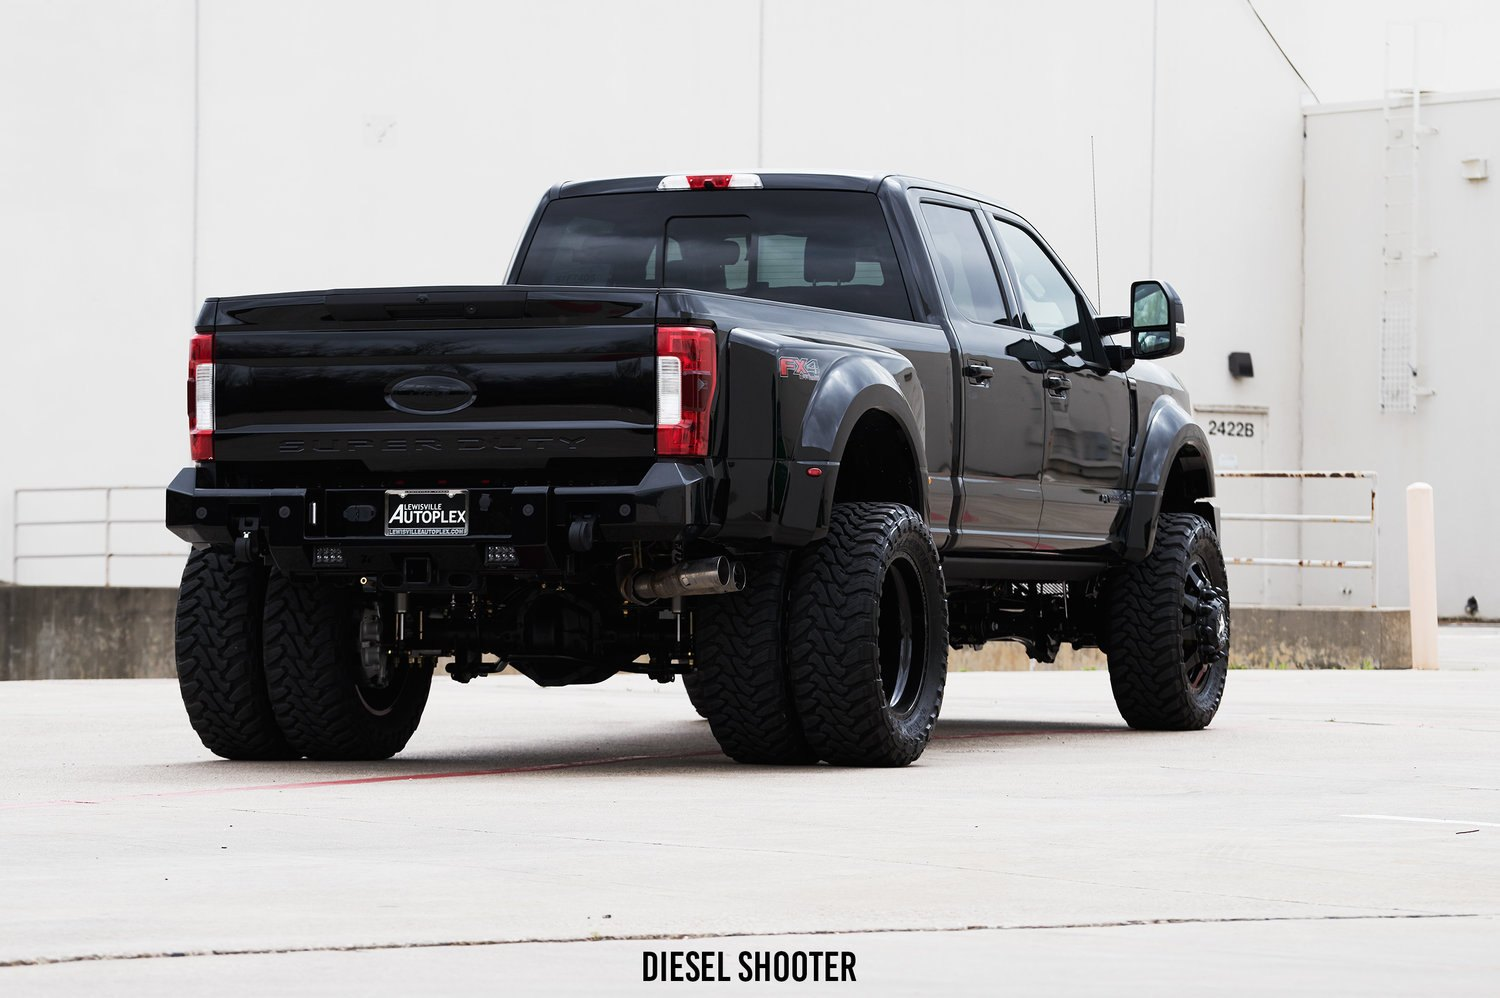 Lifted Ford Super Duty on Toyo Tires - Photo by Diesel Shooter